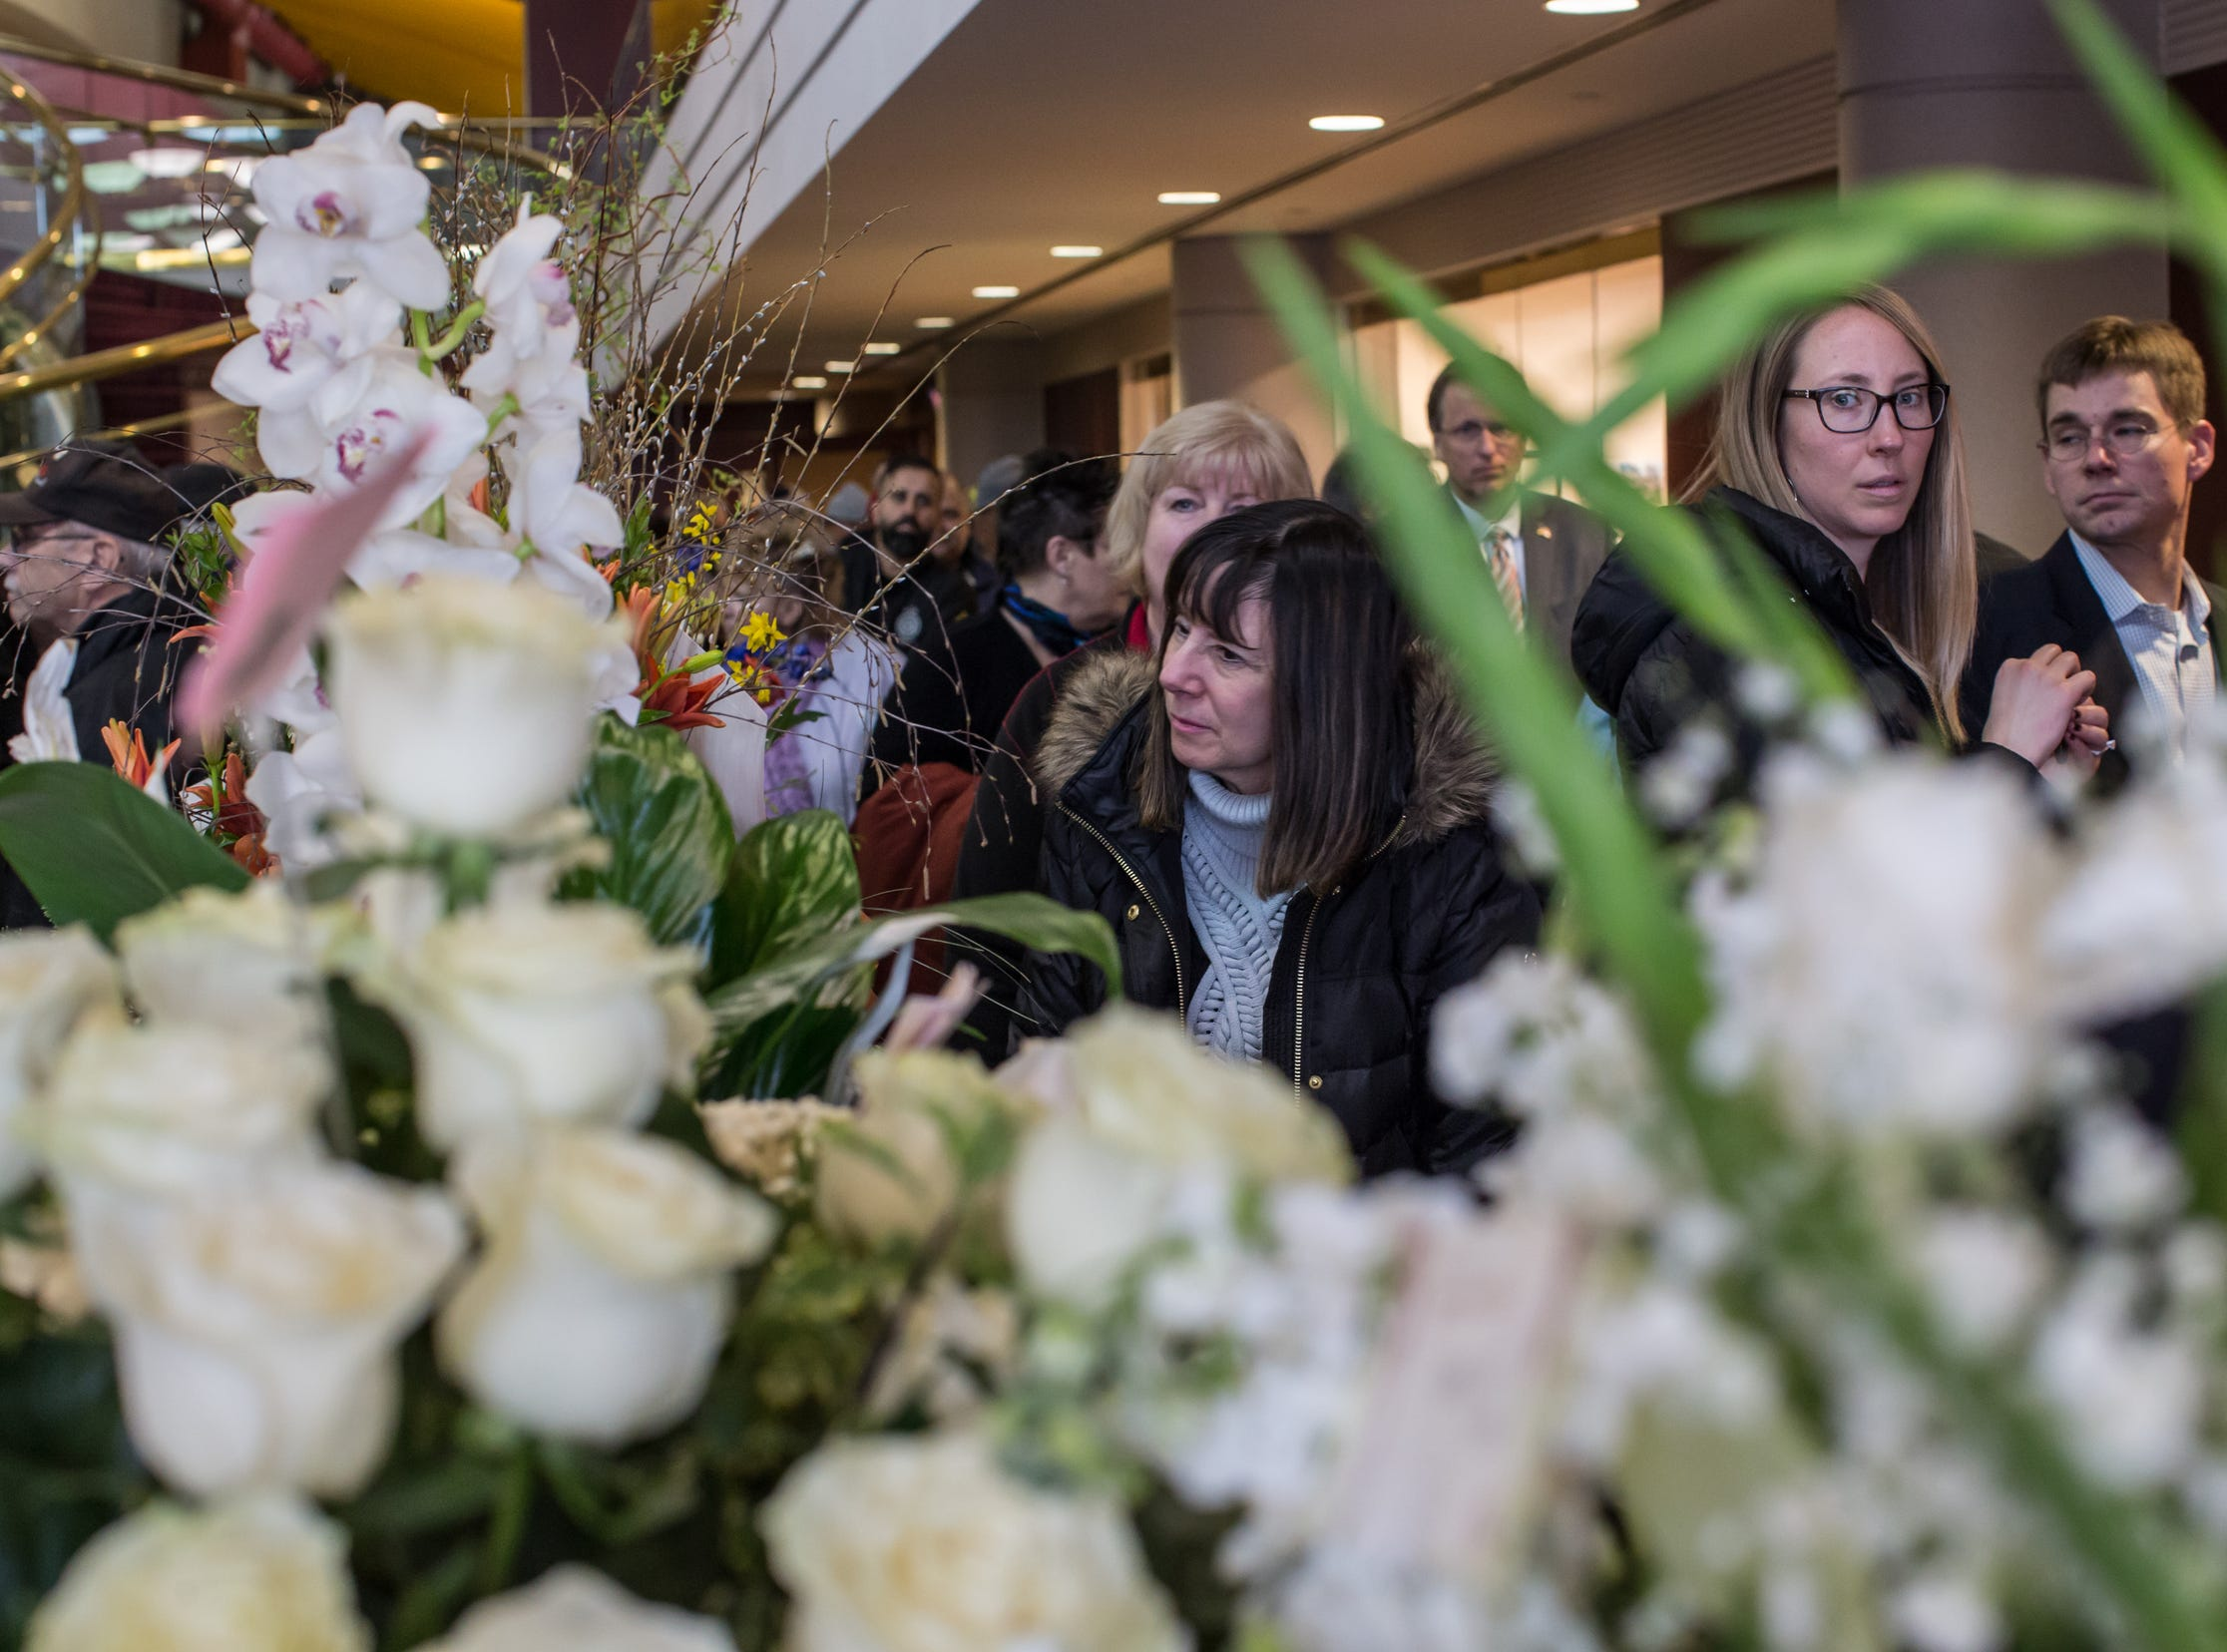 People stand in line amongst flowers sent while waiting to pay their respects during the visitation for the former U.S. Rep. John D. Dingell at the Ford Community and Performing Arts Center in Dearborn on Monday, February 11, 2019.